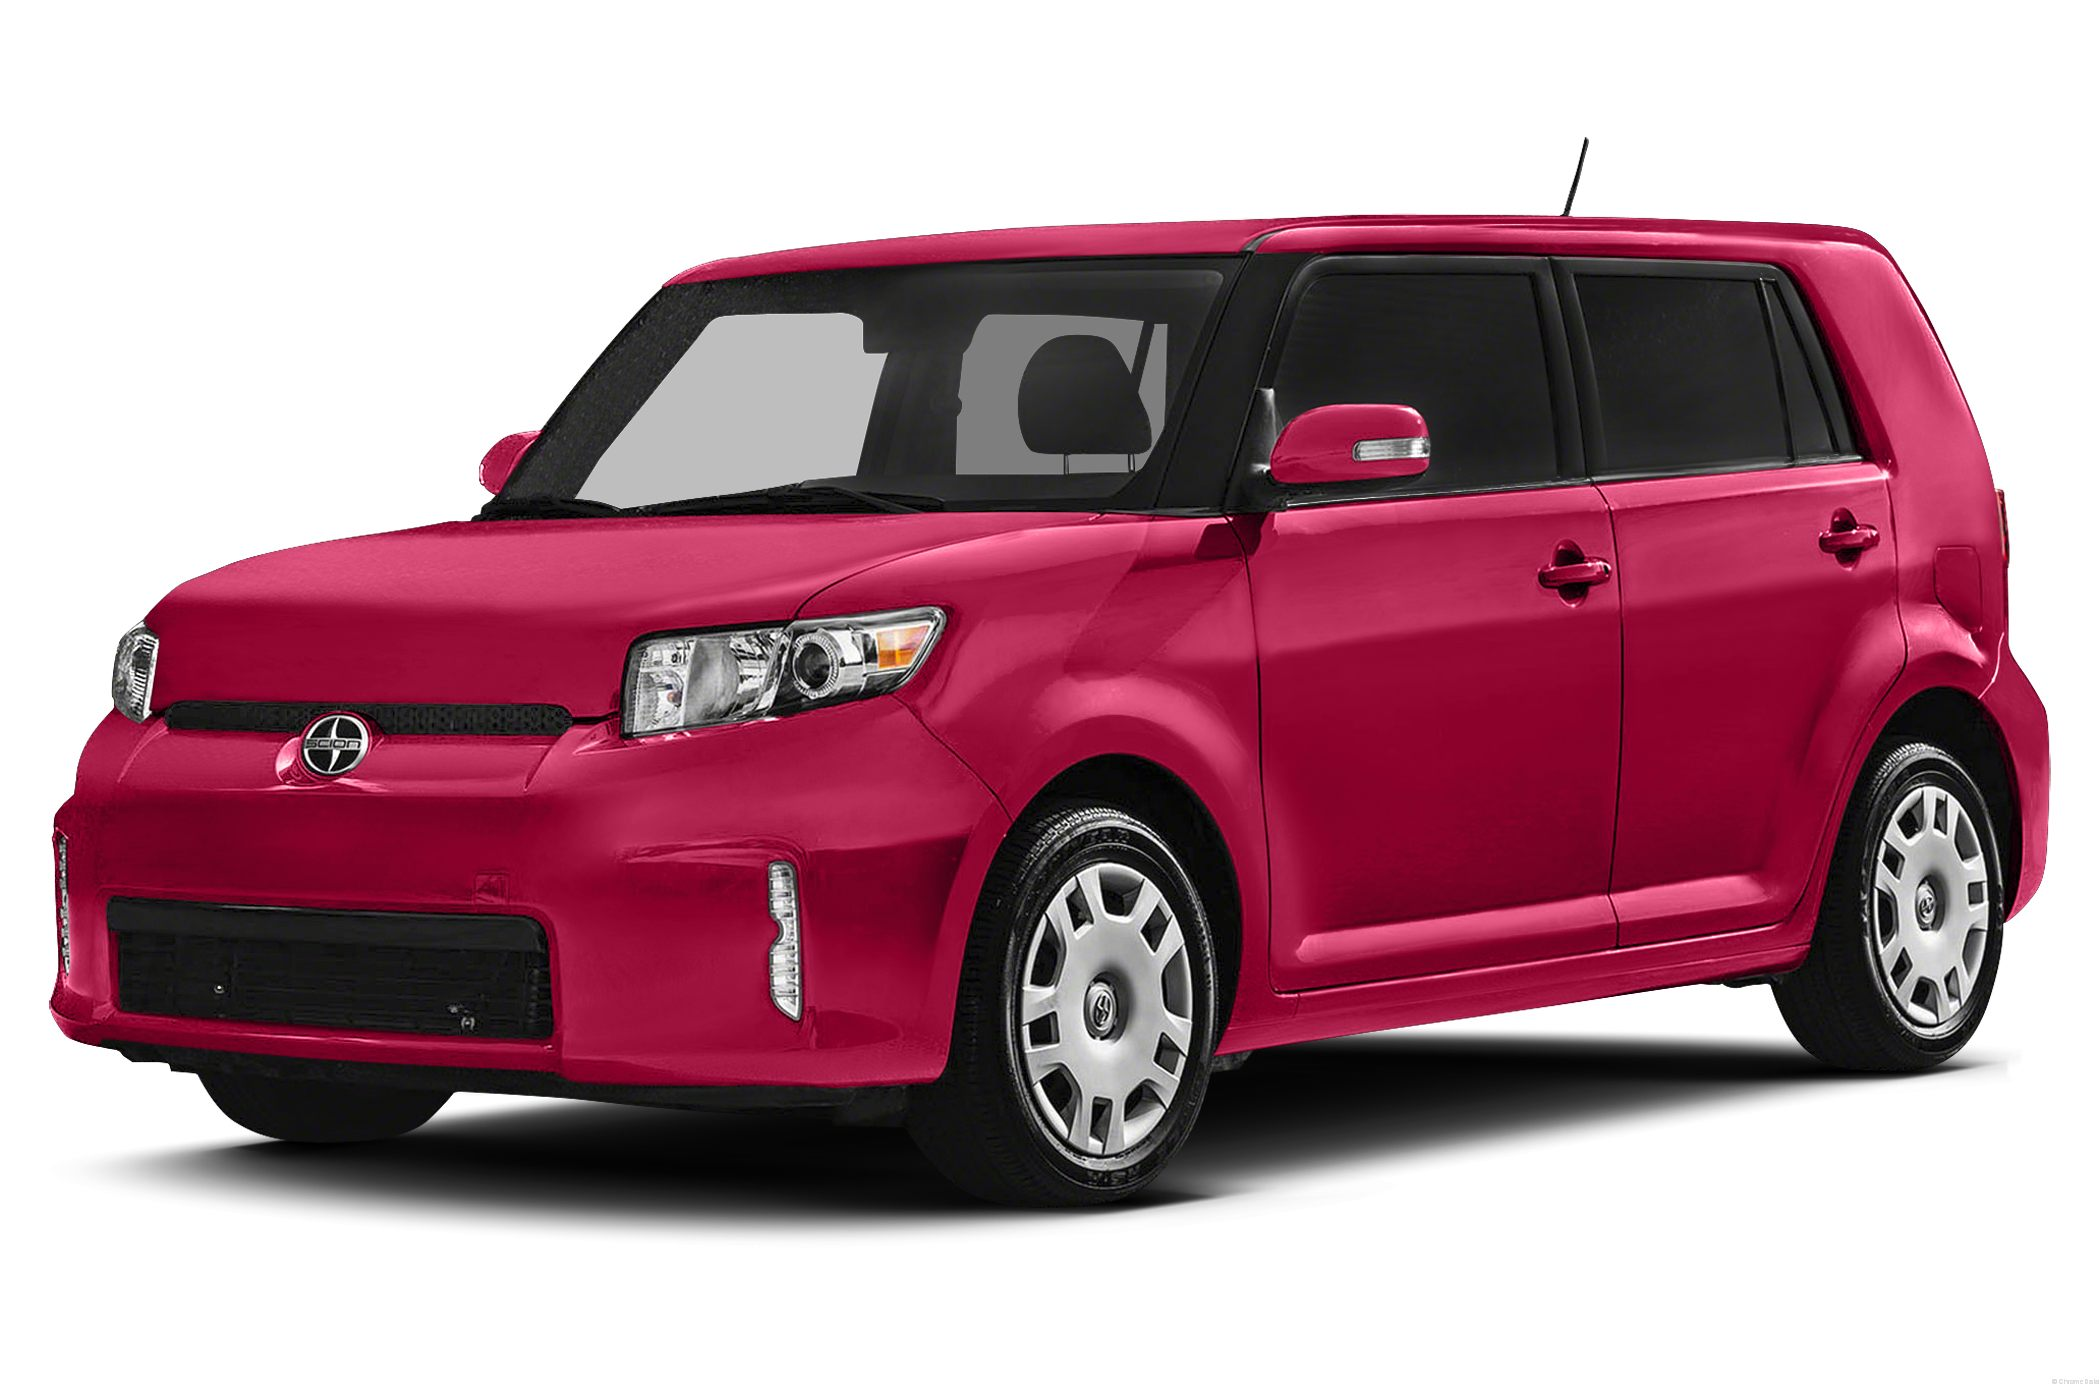 2013 Scion Xb #5